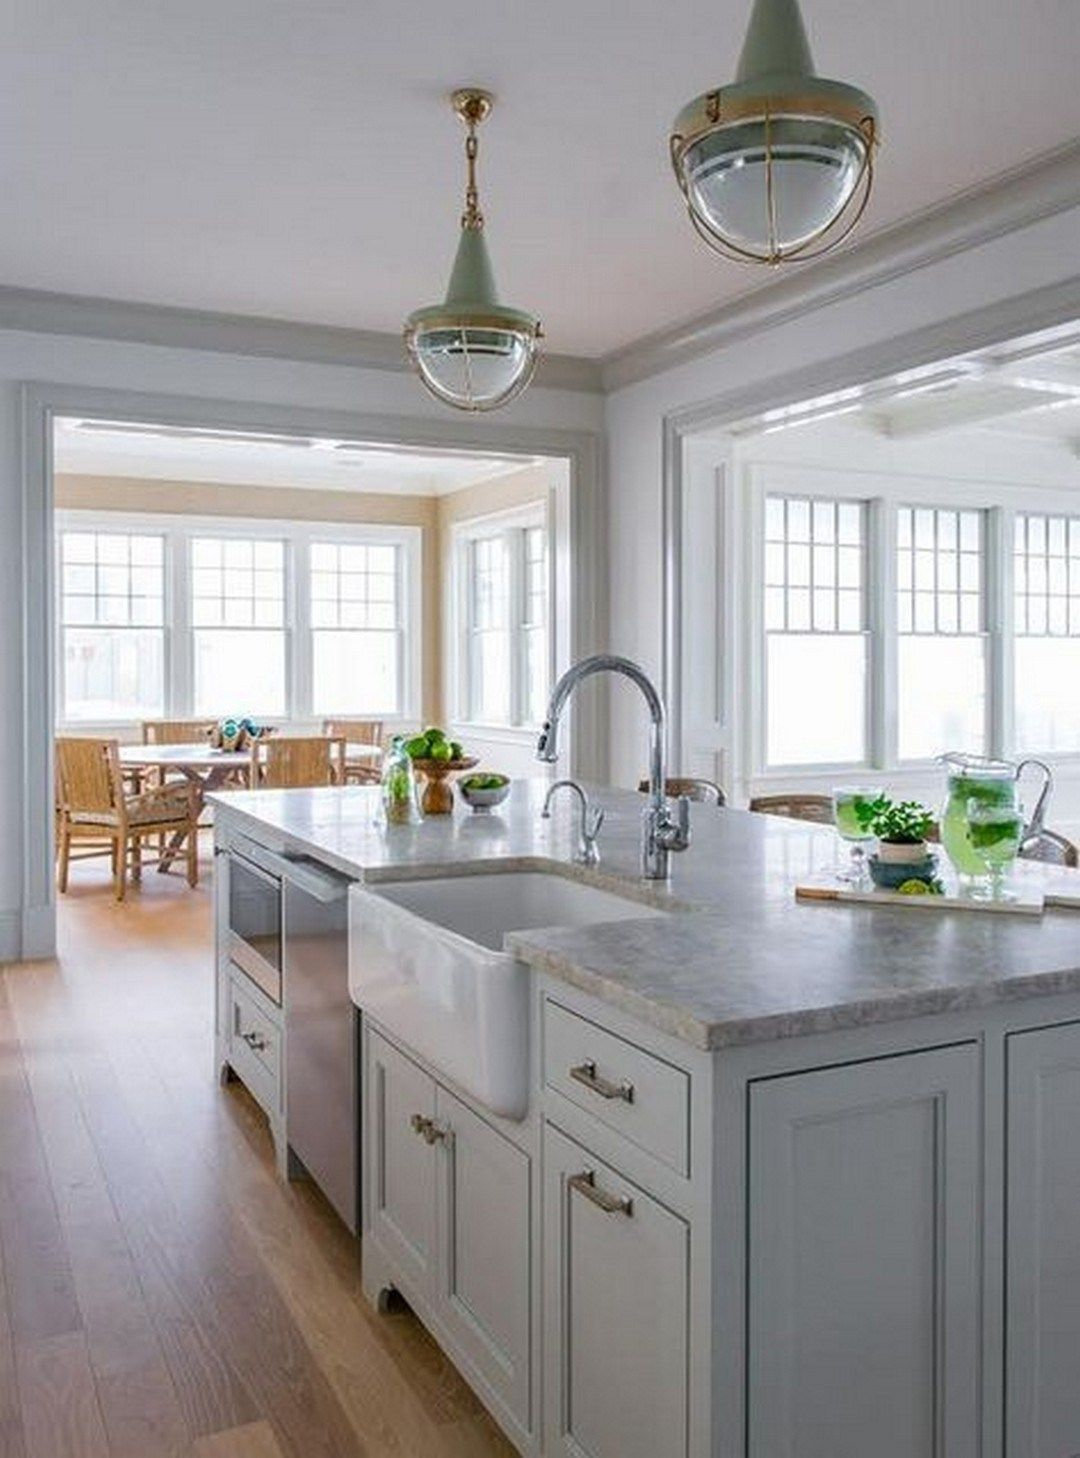 52 Farmhouse Sink Pros Cons Farmhouse Room 52 Farmhouse Sink Pros Cons Farmhouse Room 5 In 2020 Kitchen Island With Sink Kitchen Layout Kitchen Cabinet Design